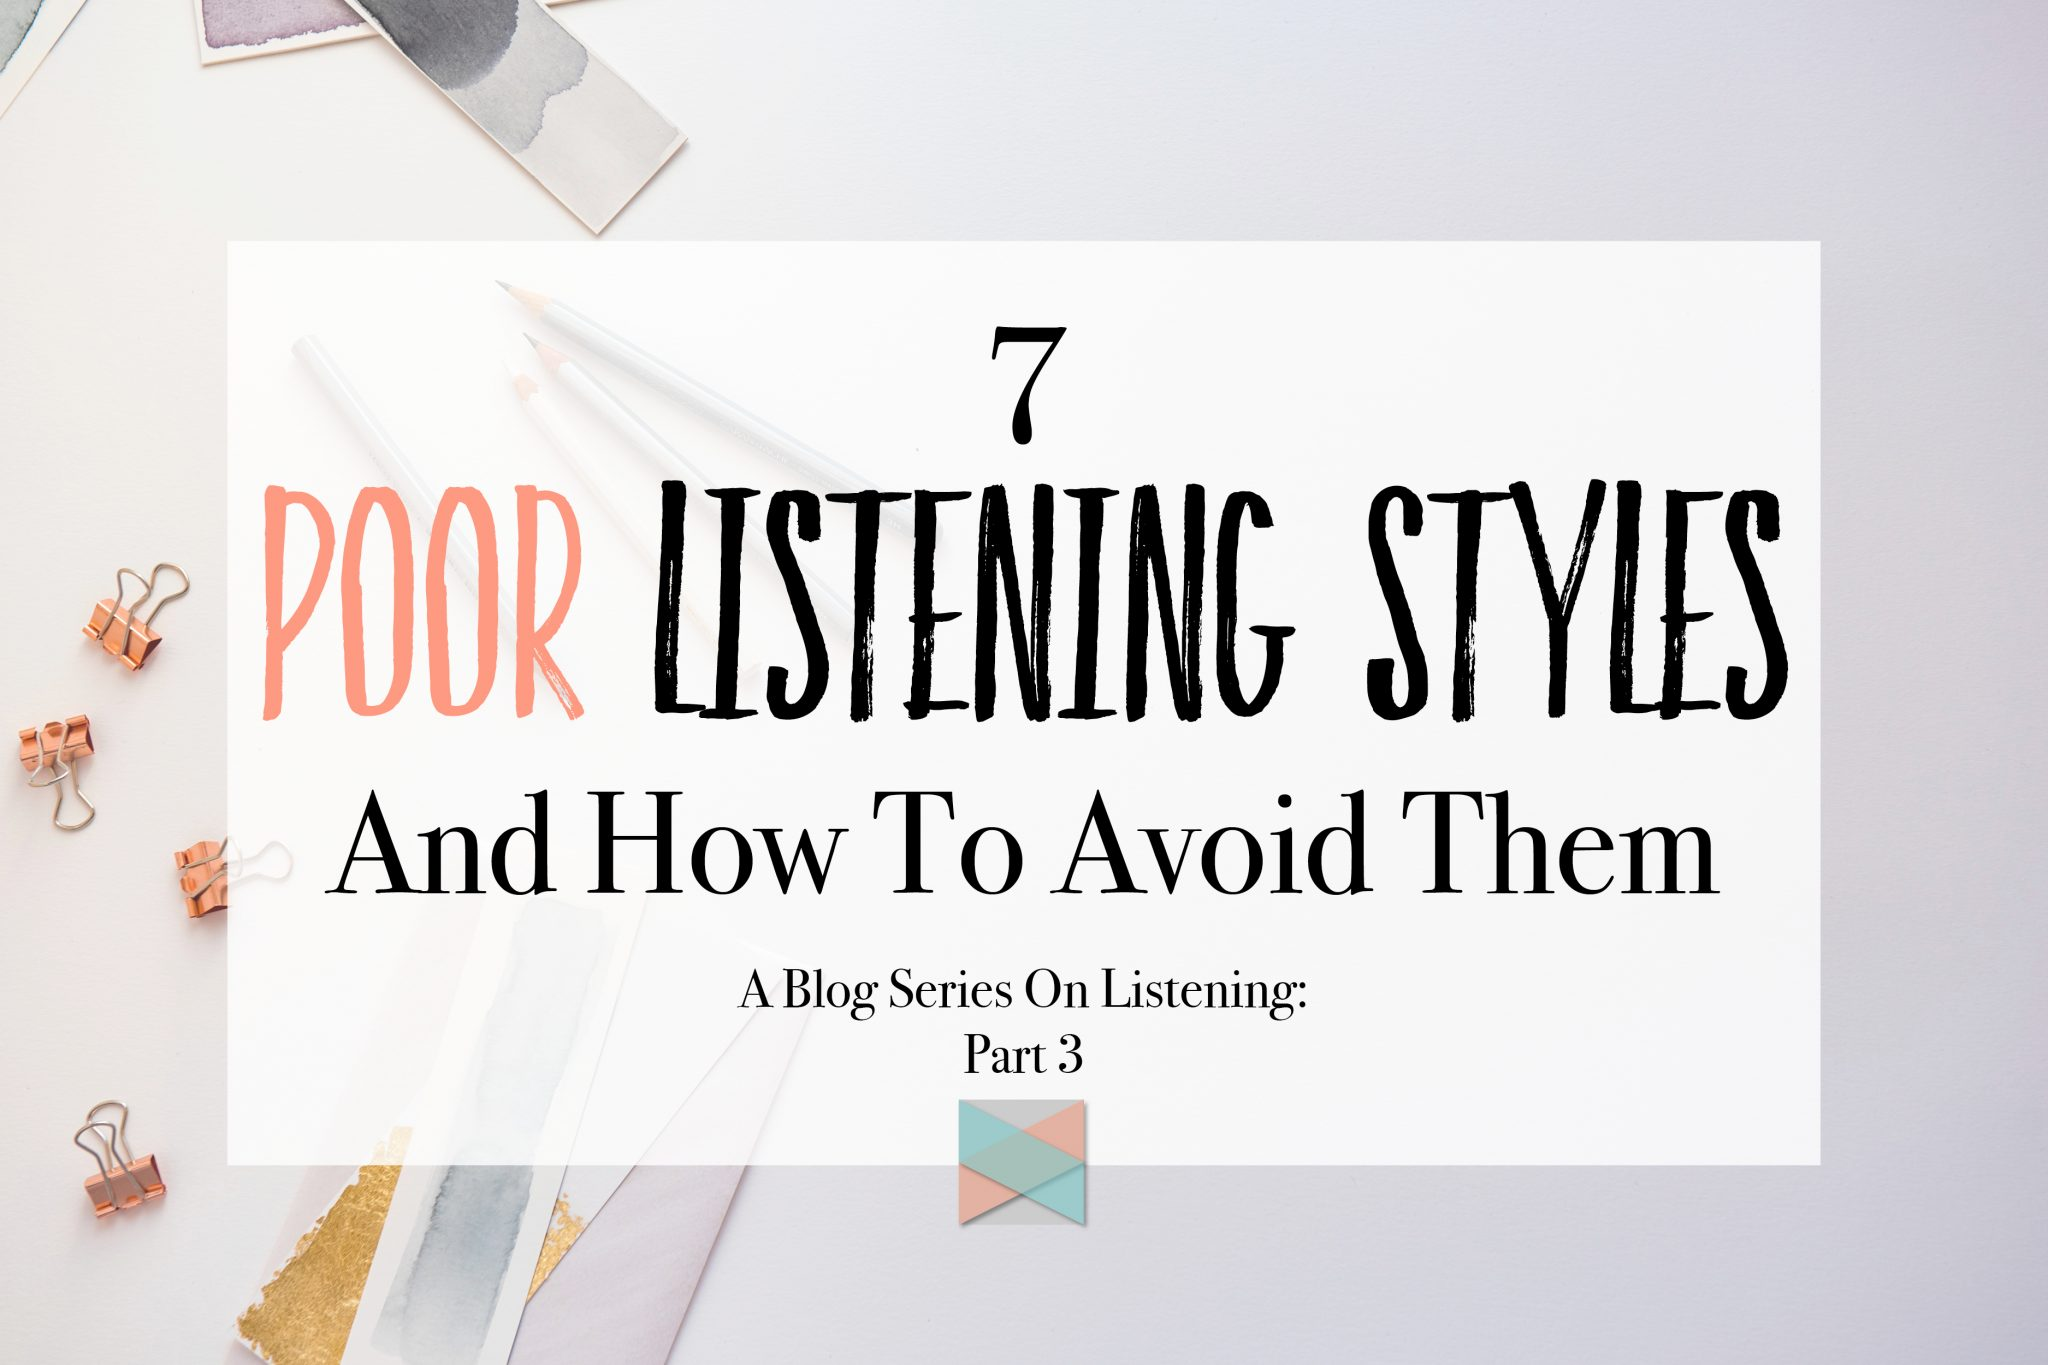 Poor Listening And How To Avoid It